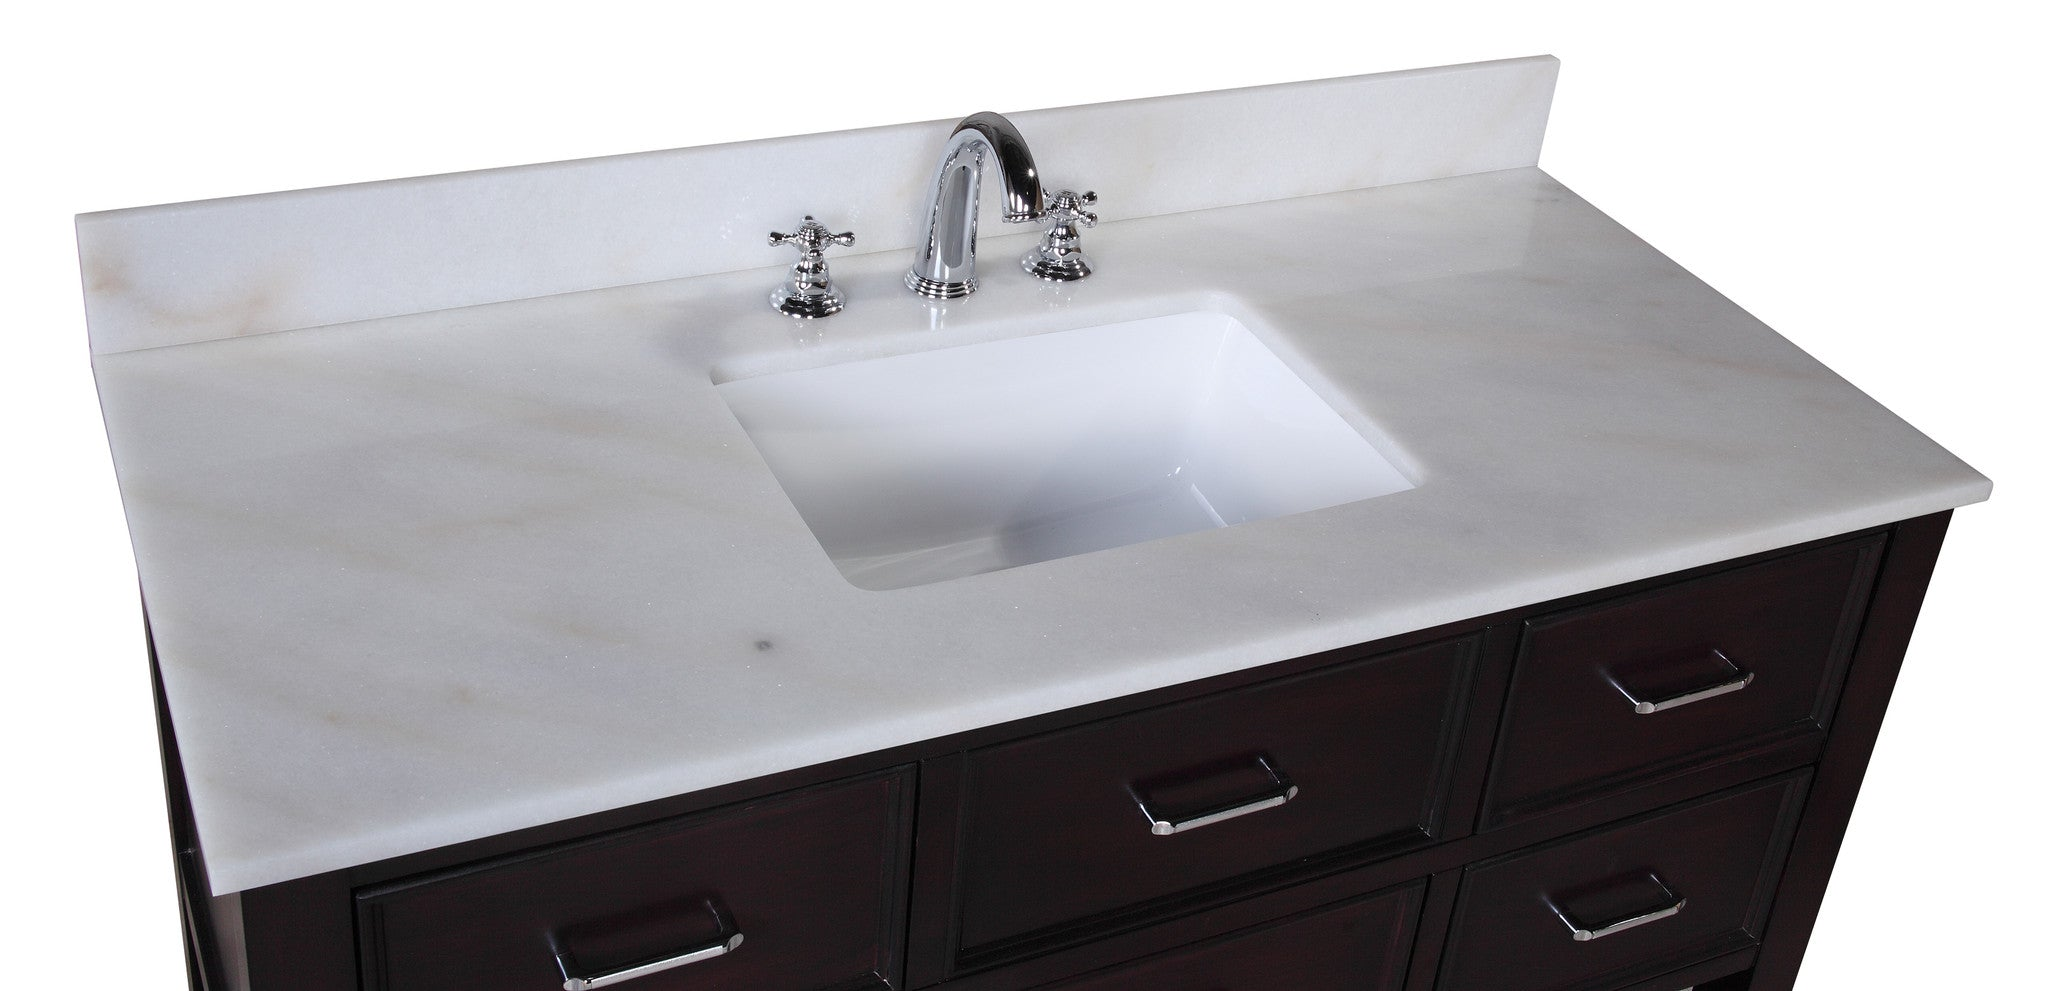 Kitchen Cabinets New Hampshire New Hampshire 48 Inch Vanity White Chocolate Kitchenbathcollection